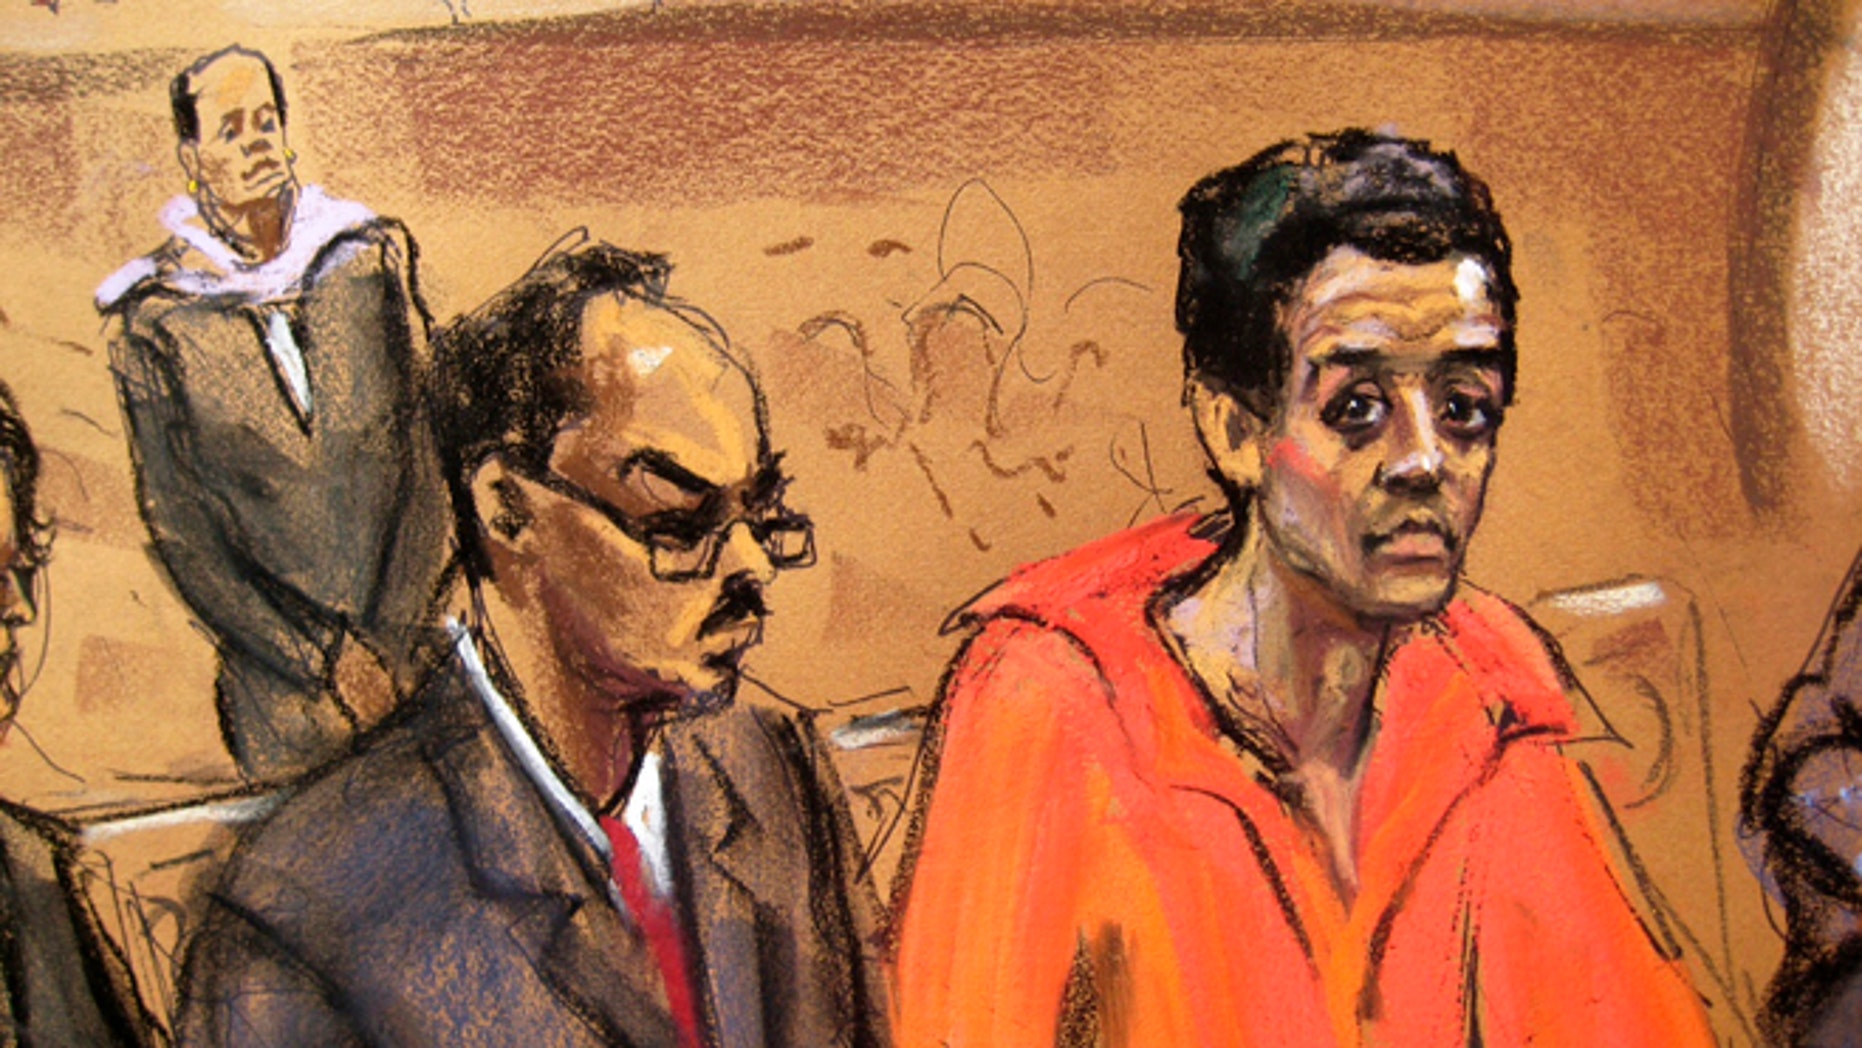 Robel Phillipos (R), the teenager accused of lying to FBI agents in the Boston Marathon bombing investigation, appears in court in Boston, Massachusetts in this May 6, 2013 court sketch.